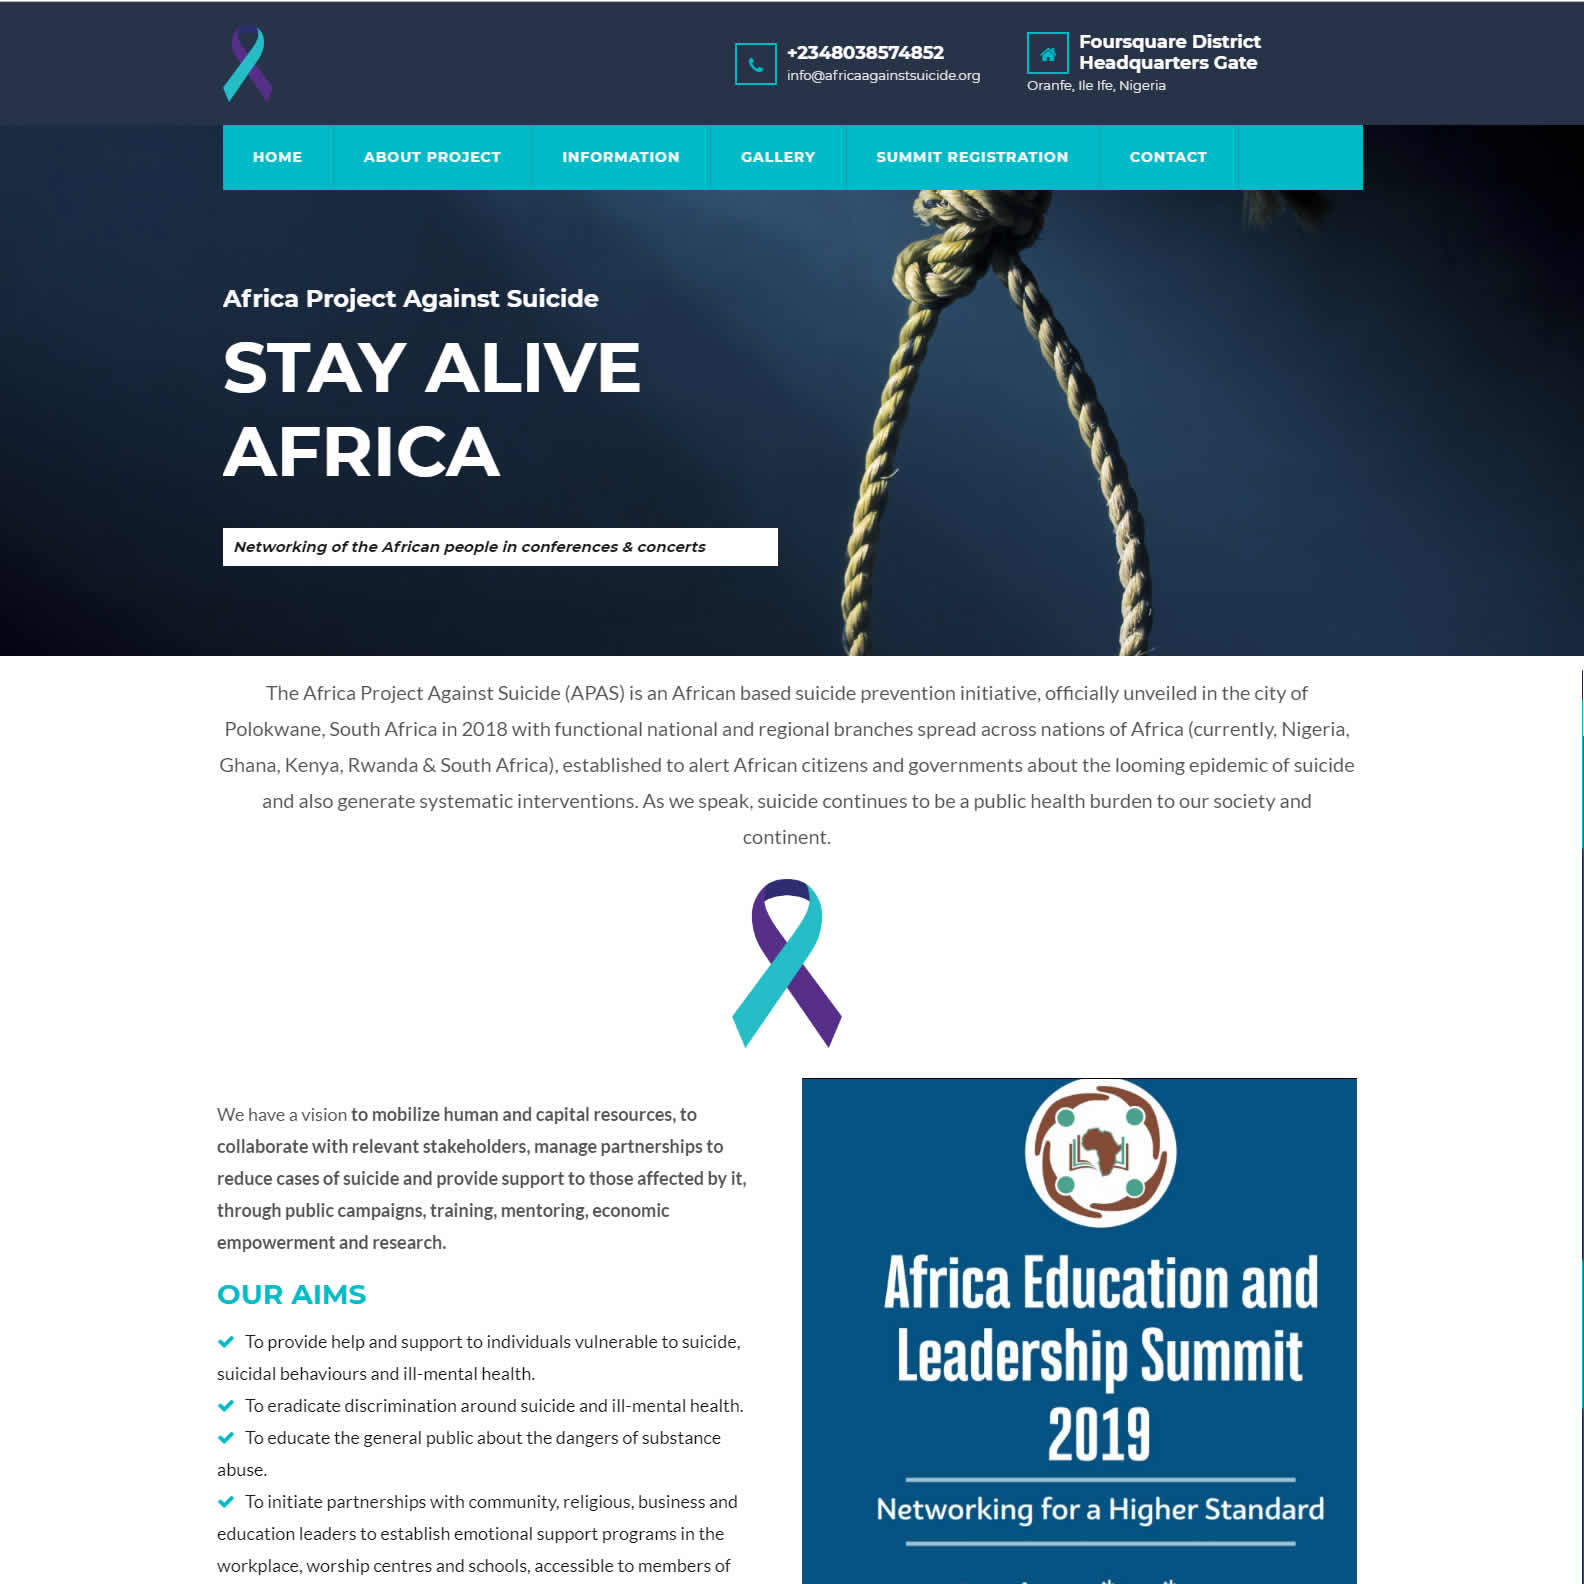 NGO website design in Nigeria